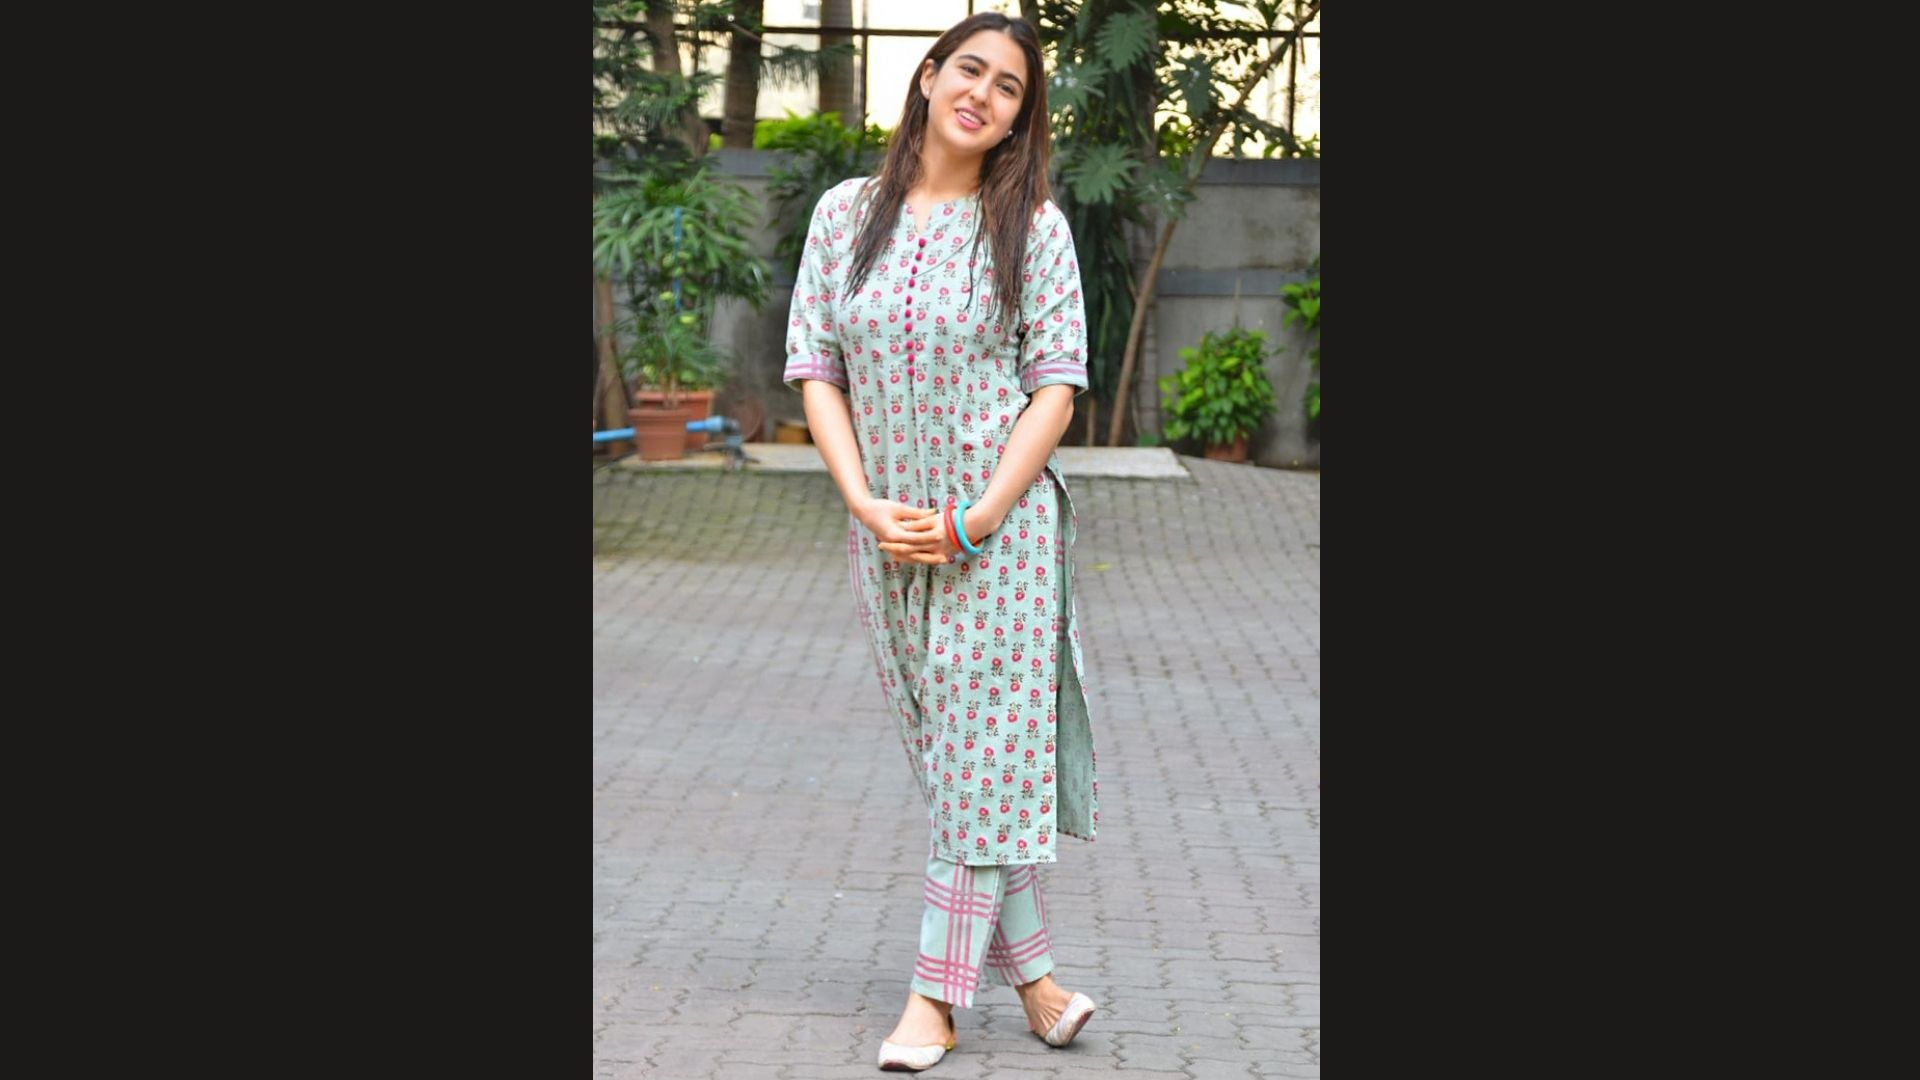 Sara Ali Khan Is Making Every Hair Flip Count In Her Cotton Printed Kurti And Juttis As She Gets Snapped – SEE PICS